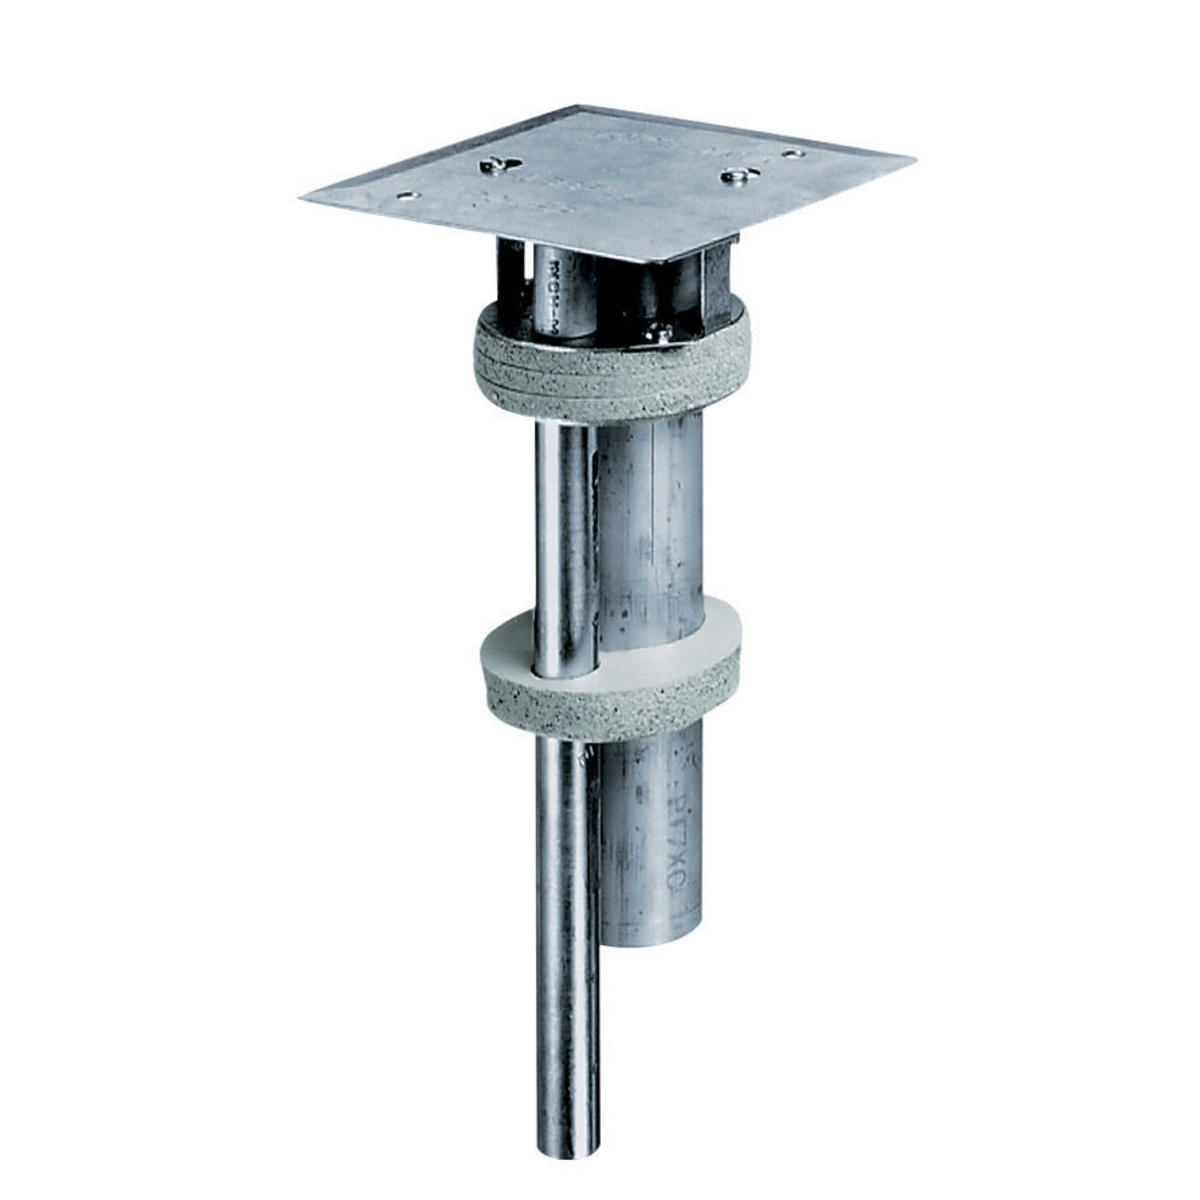 Hubbell PT7XC 3 Inch Large Capacity Multi-Service Floor Pedestal Through